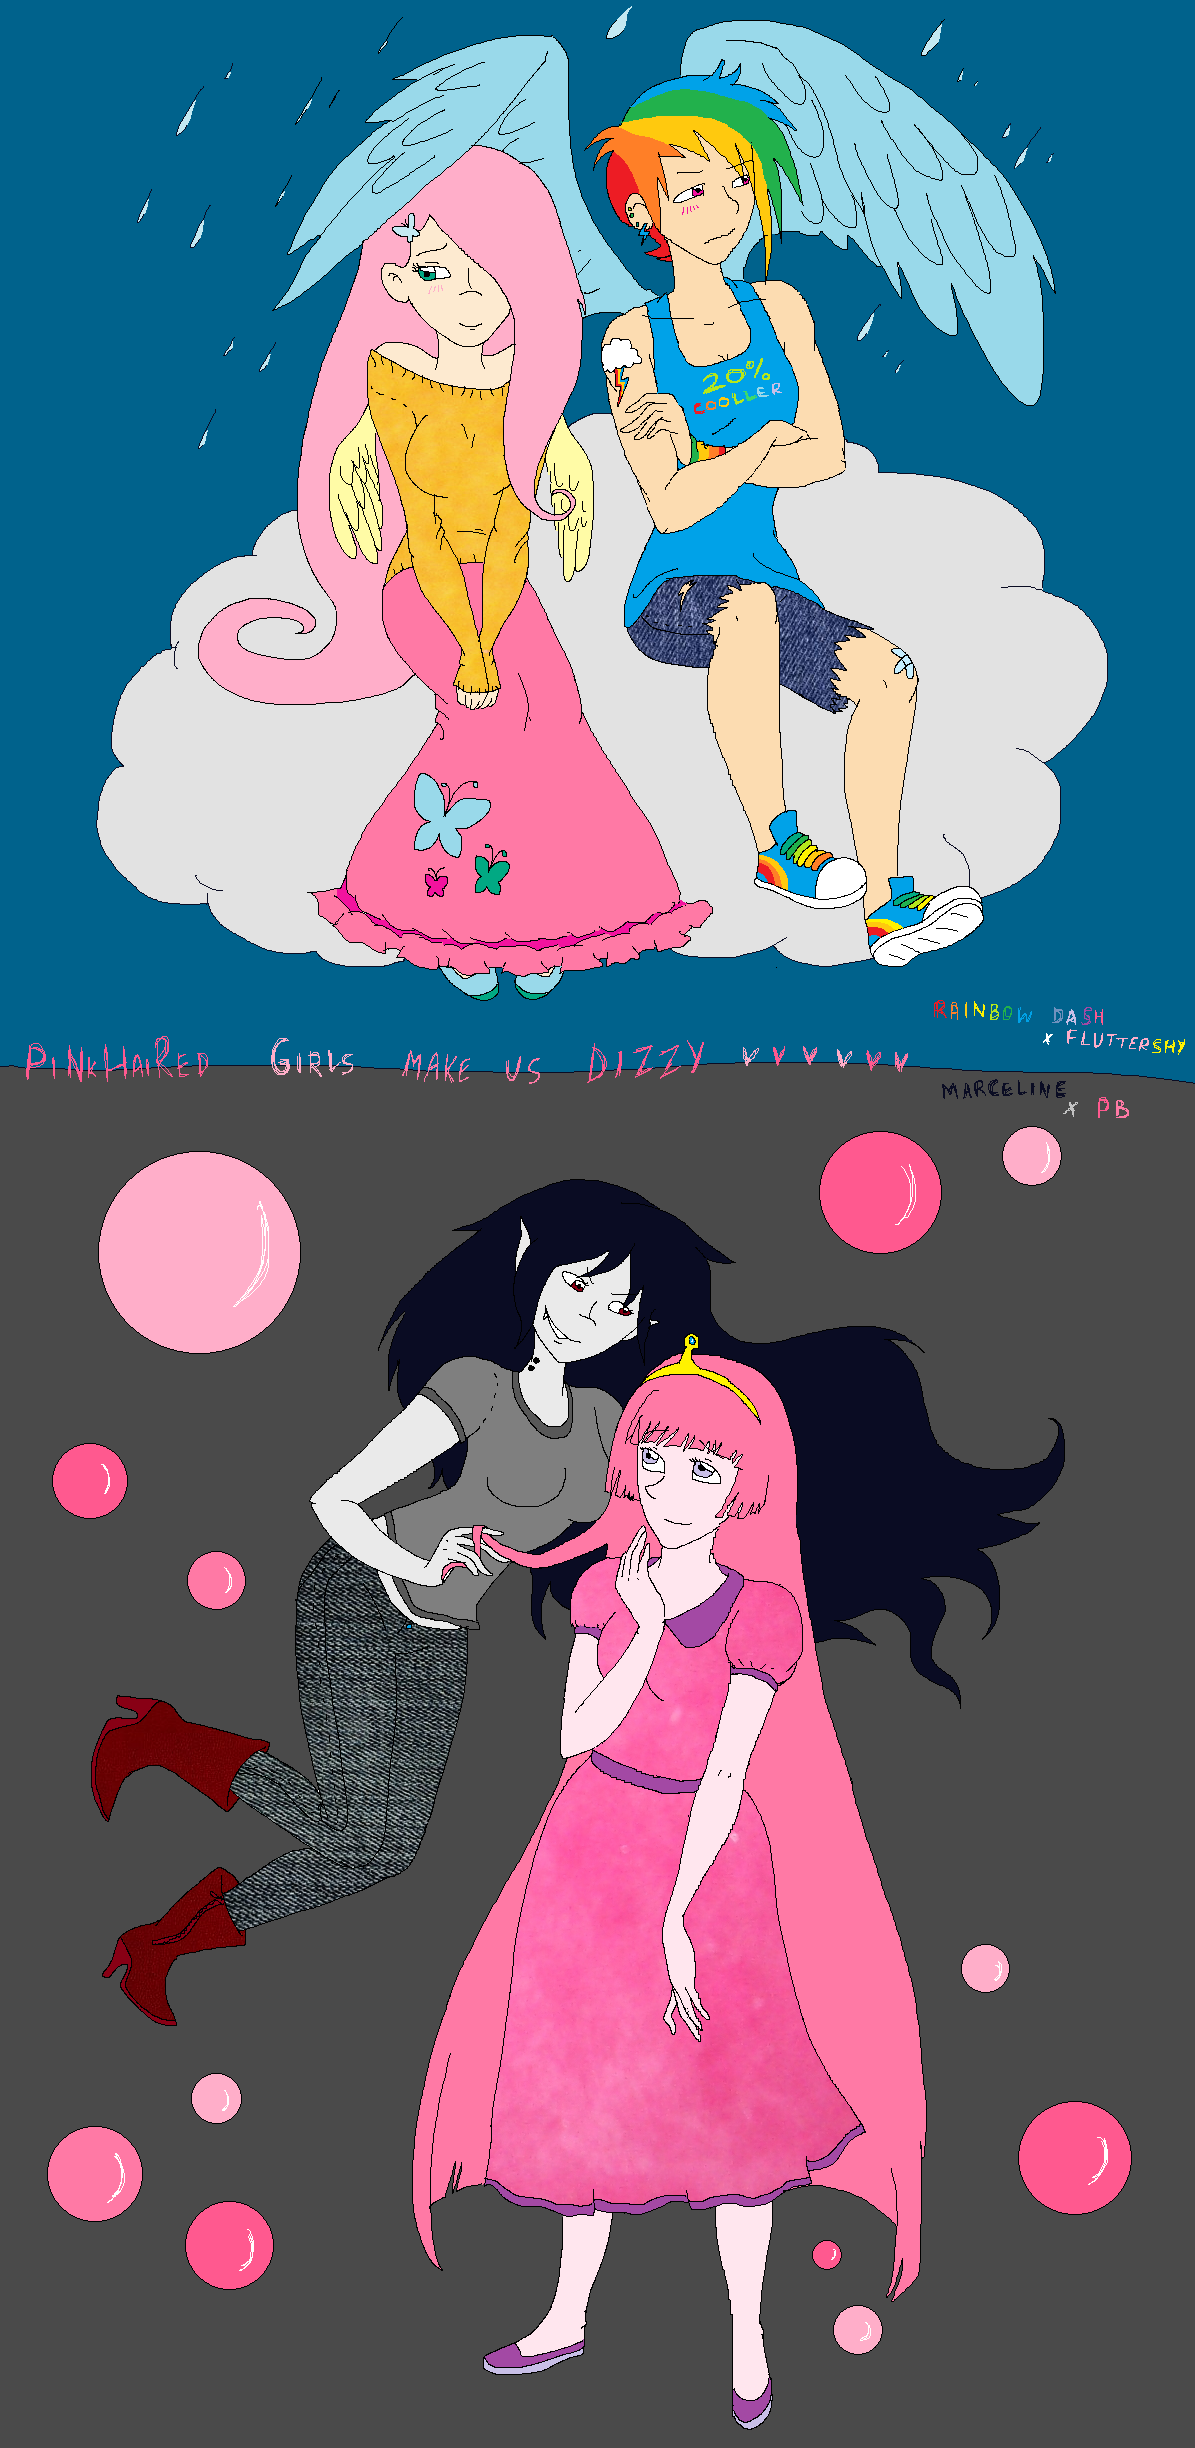 Pinkhaired girls make me DIZZY by just-agu